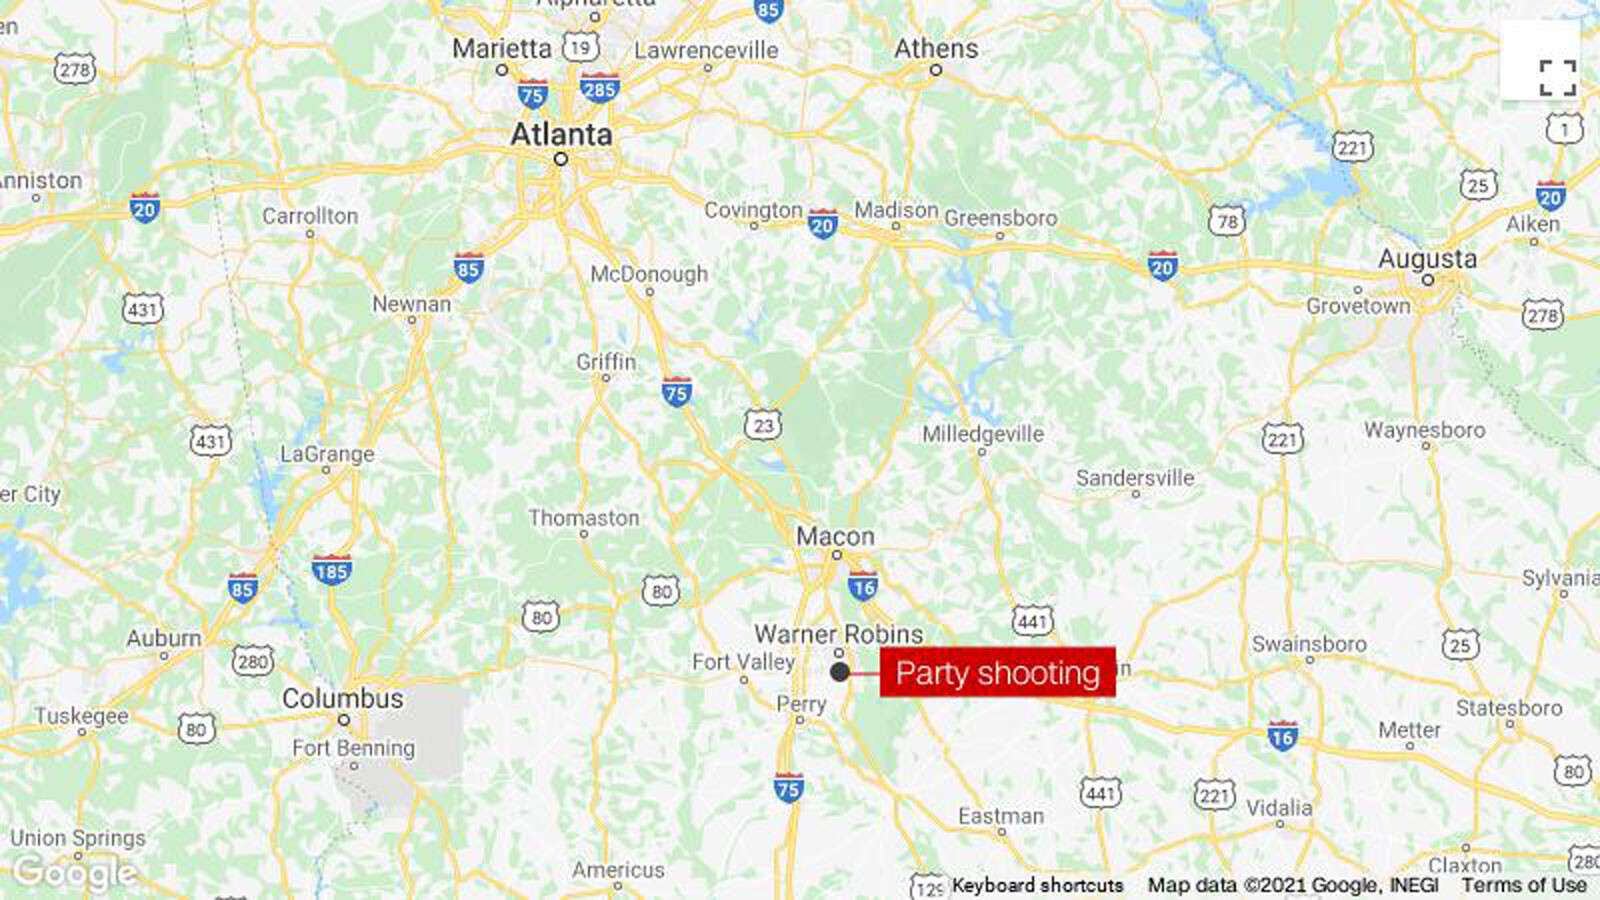 A shooting at a party in Warner Robins, Georgia, left 1 dead and 4 hurt, police say